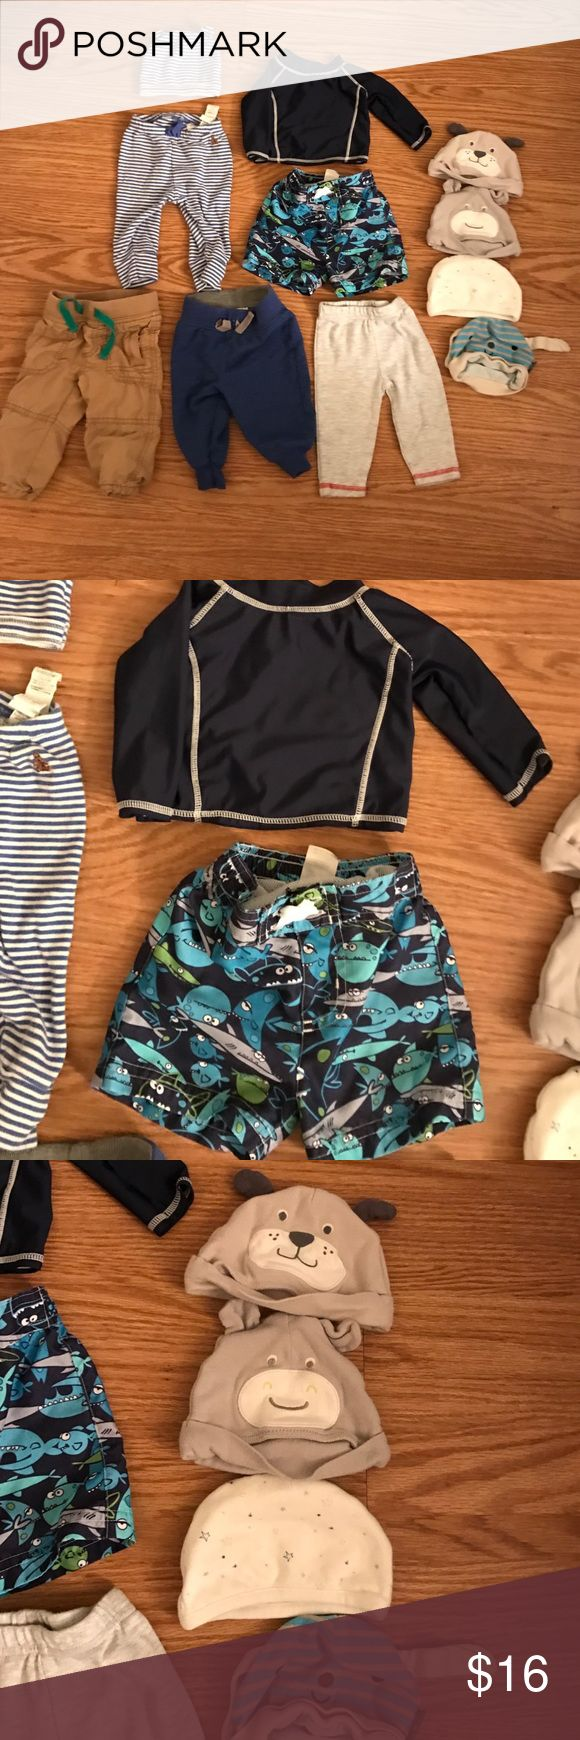 11 piece lot of 3-6 month baby boy clothing Various brands.  No rips or stains but some have been used more than others. check out my other baby listings as well. 4 pants, 5 hats, and a swimming suit set. Old Navy Other